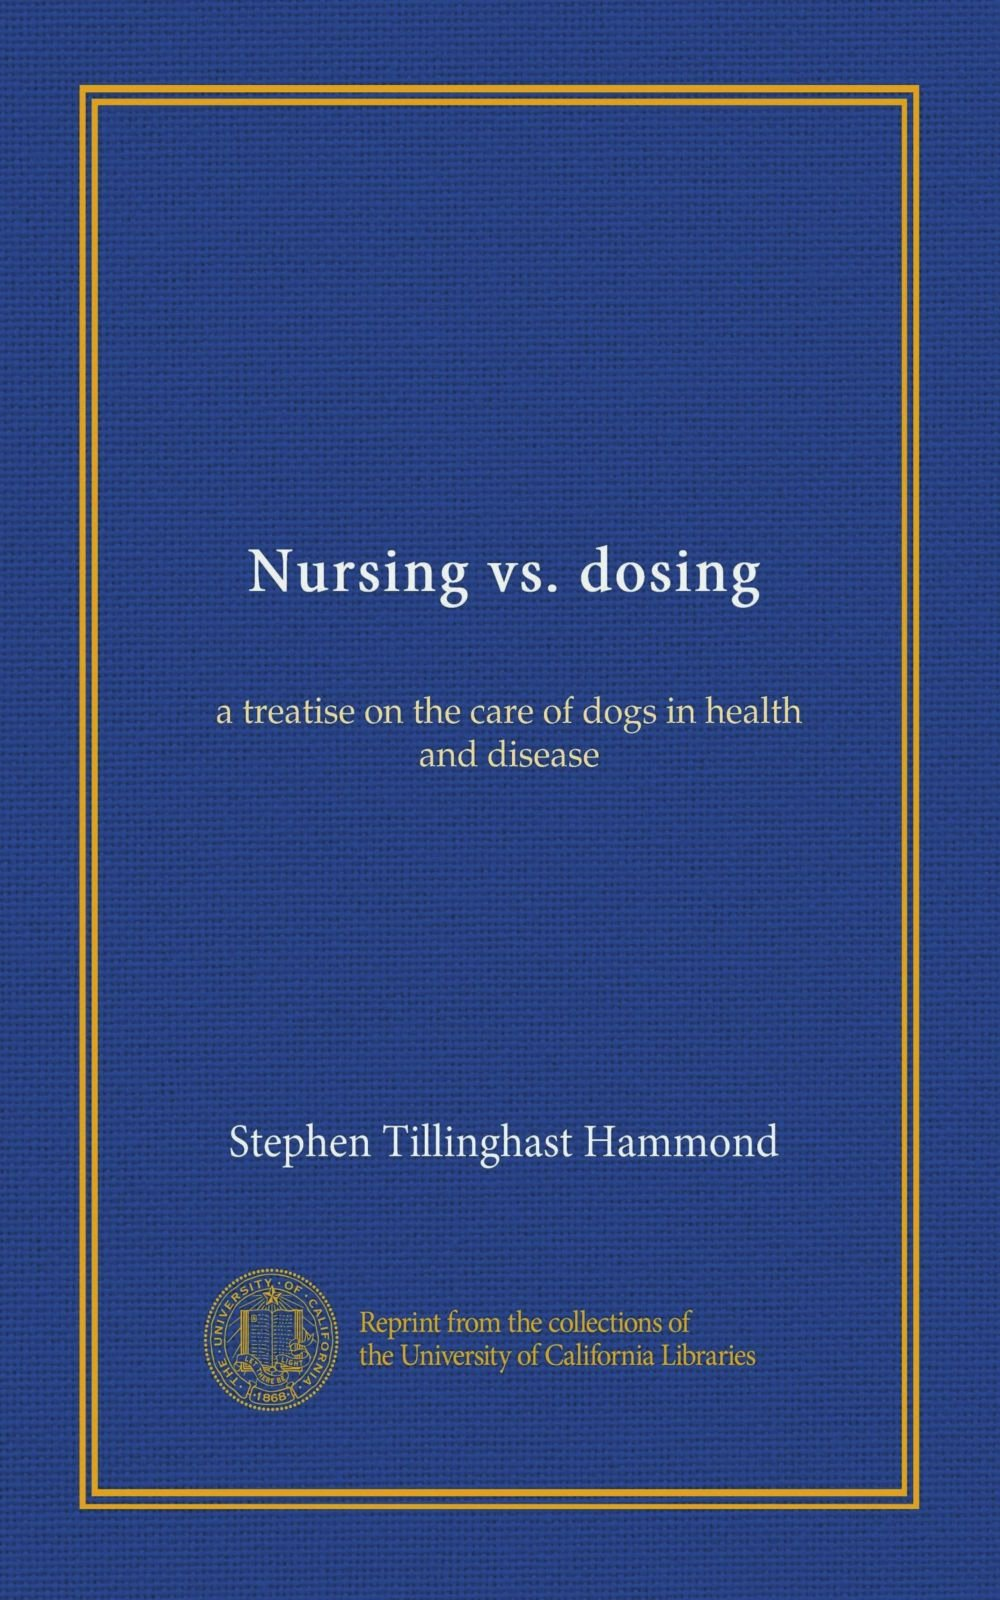 Download Nursing vs. dosing: a treatise on the care of dogs in health and disease pdf